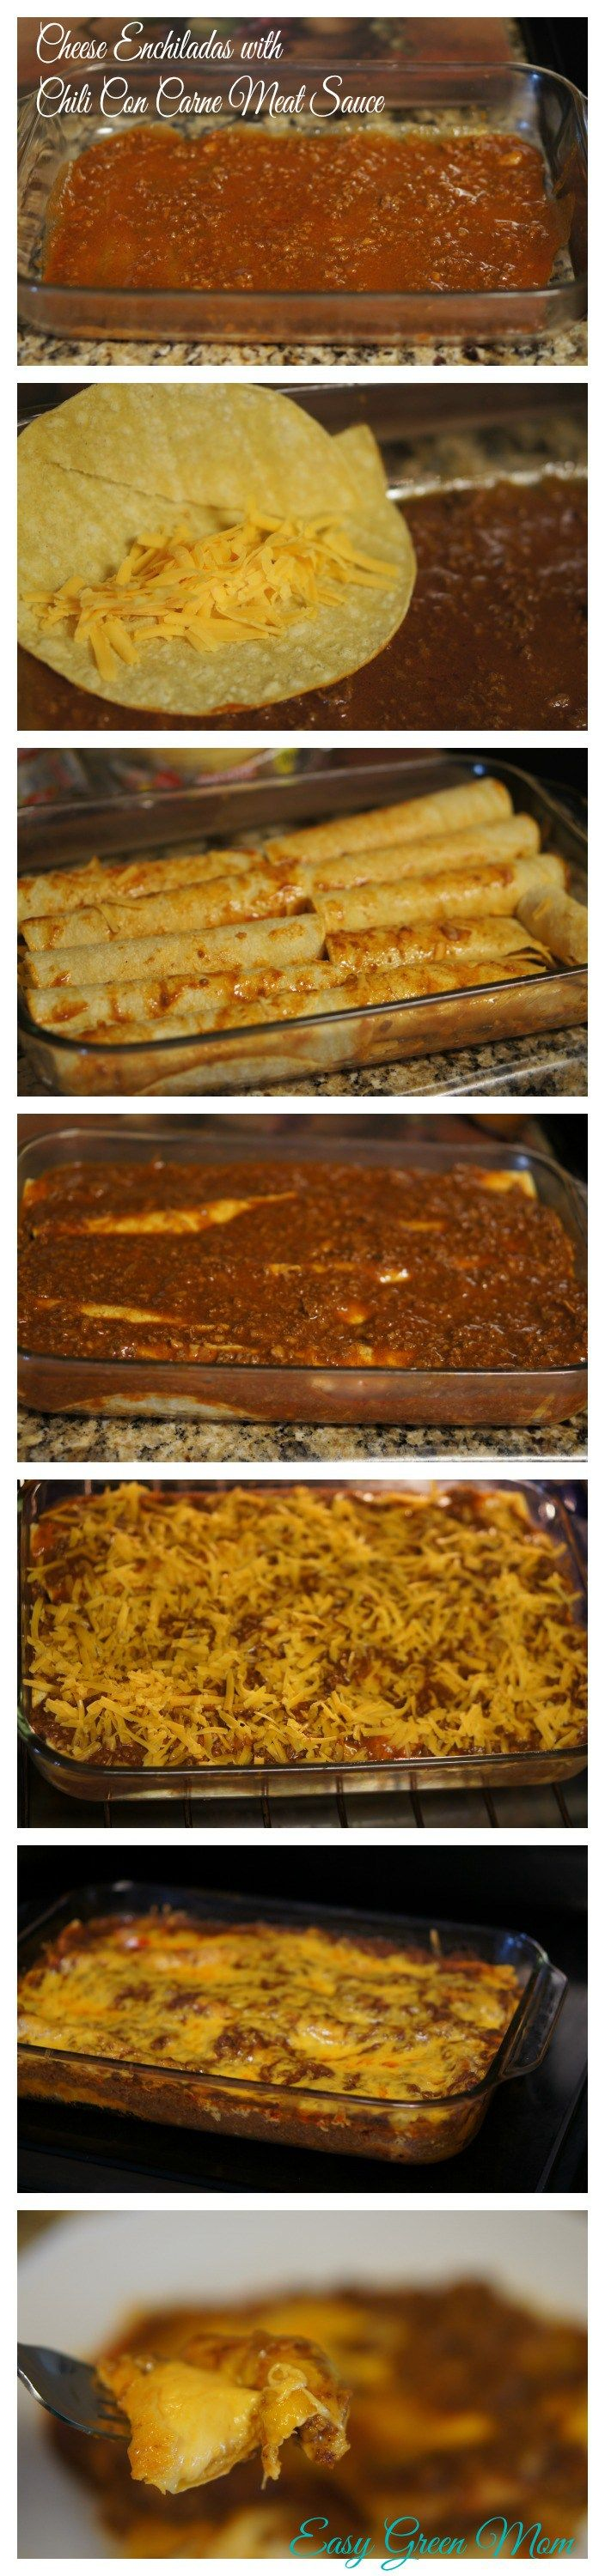 Cheese Enchiladas with Chili Con Carne Meat Sauce steps